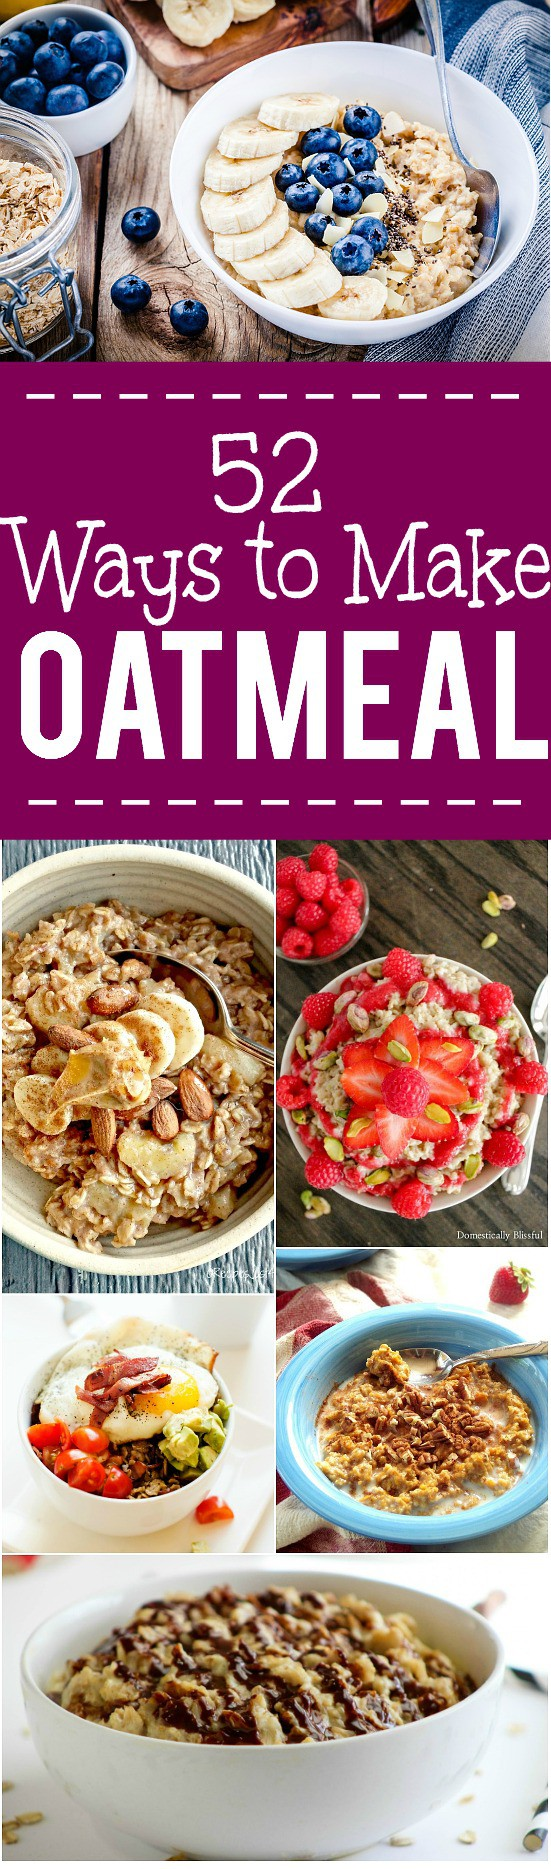 52 Breakfast Oatmeal Recipes - Over 50 new and delicious ways to eat your favorite breakfast! Try these BEST breakfast oatmeal recipes for a delightfully yummy reason to wake up in the morning. YES! I love oatmeal! It's really the perfect breakfast!